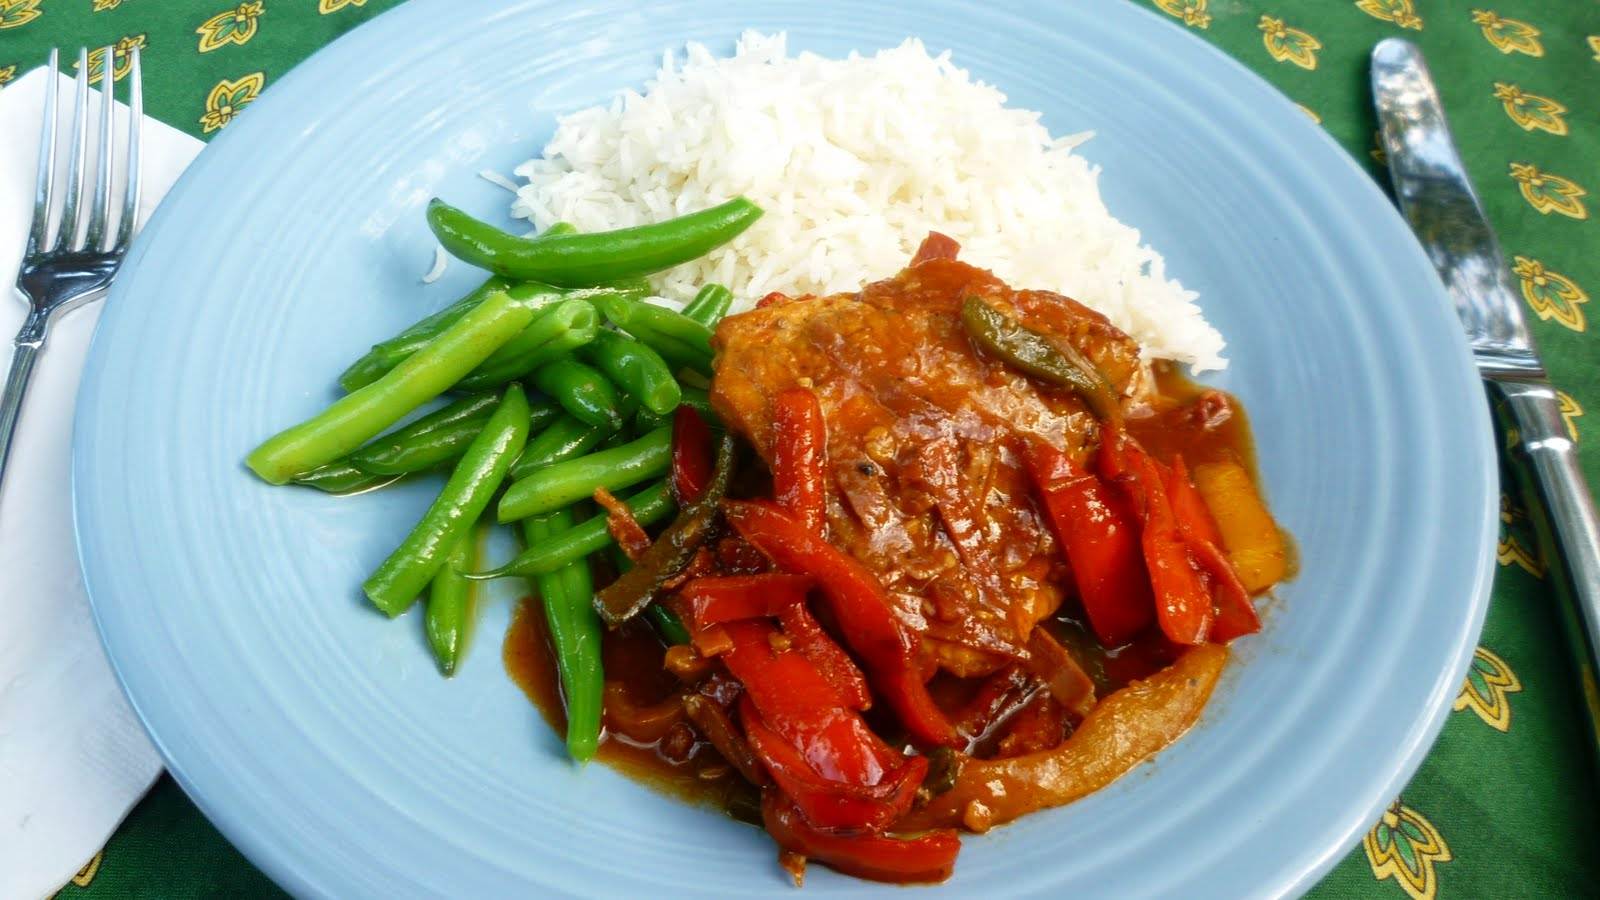 ... Poulet Basquaise—Basque-Style Chicken with Peppers, Ham & Tomatoes